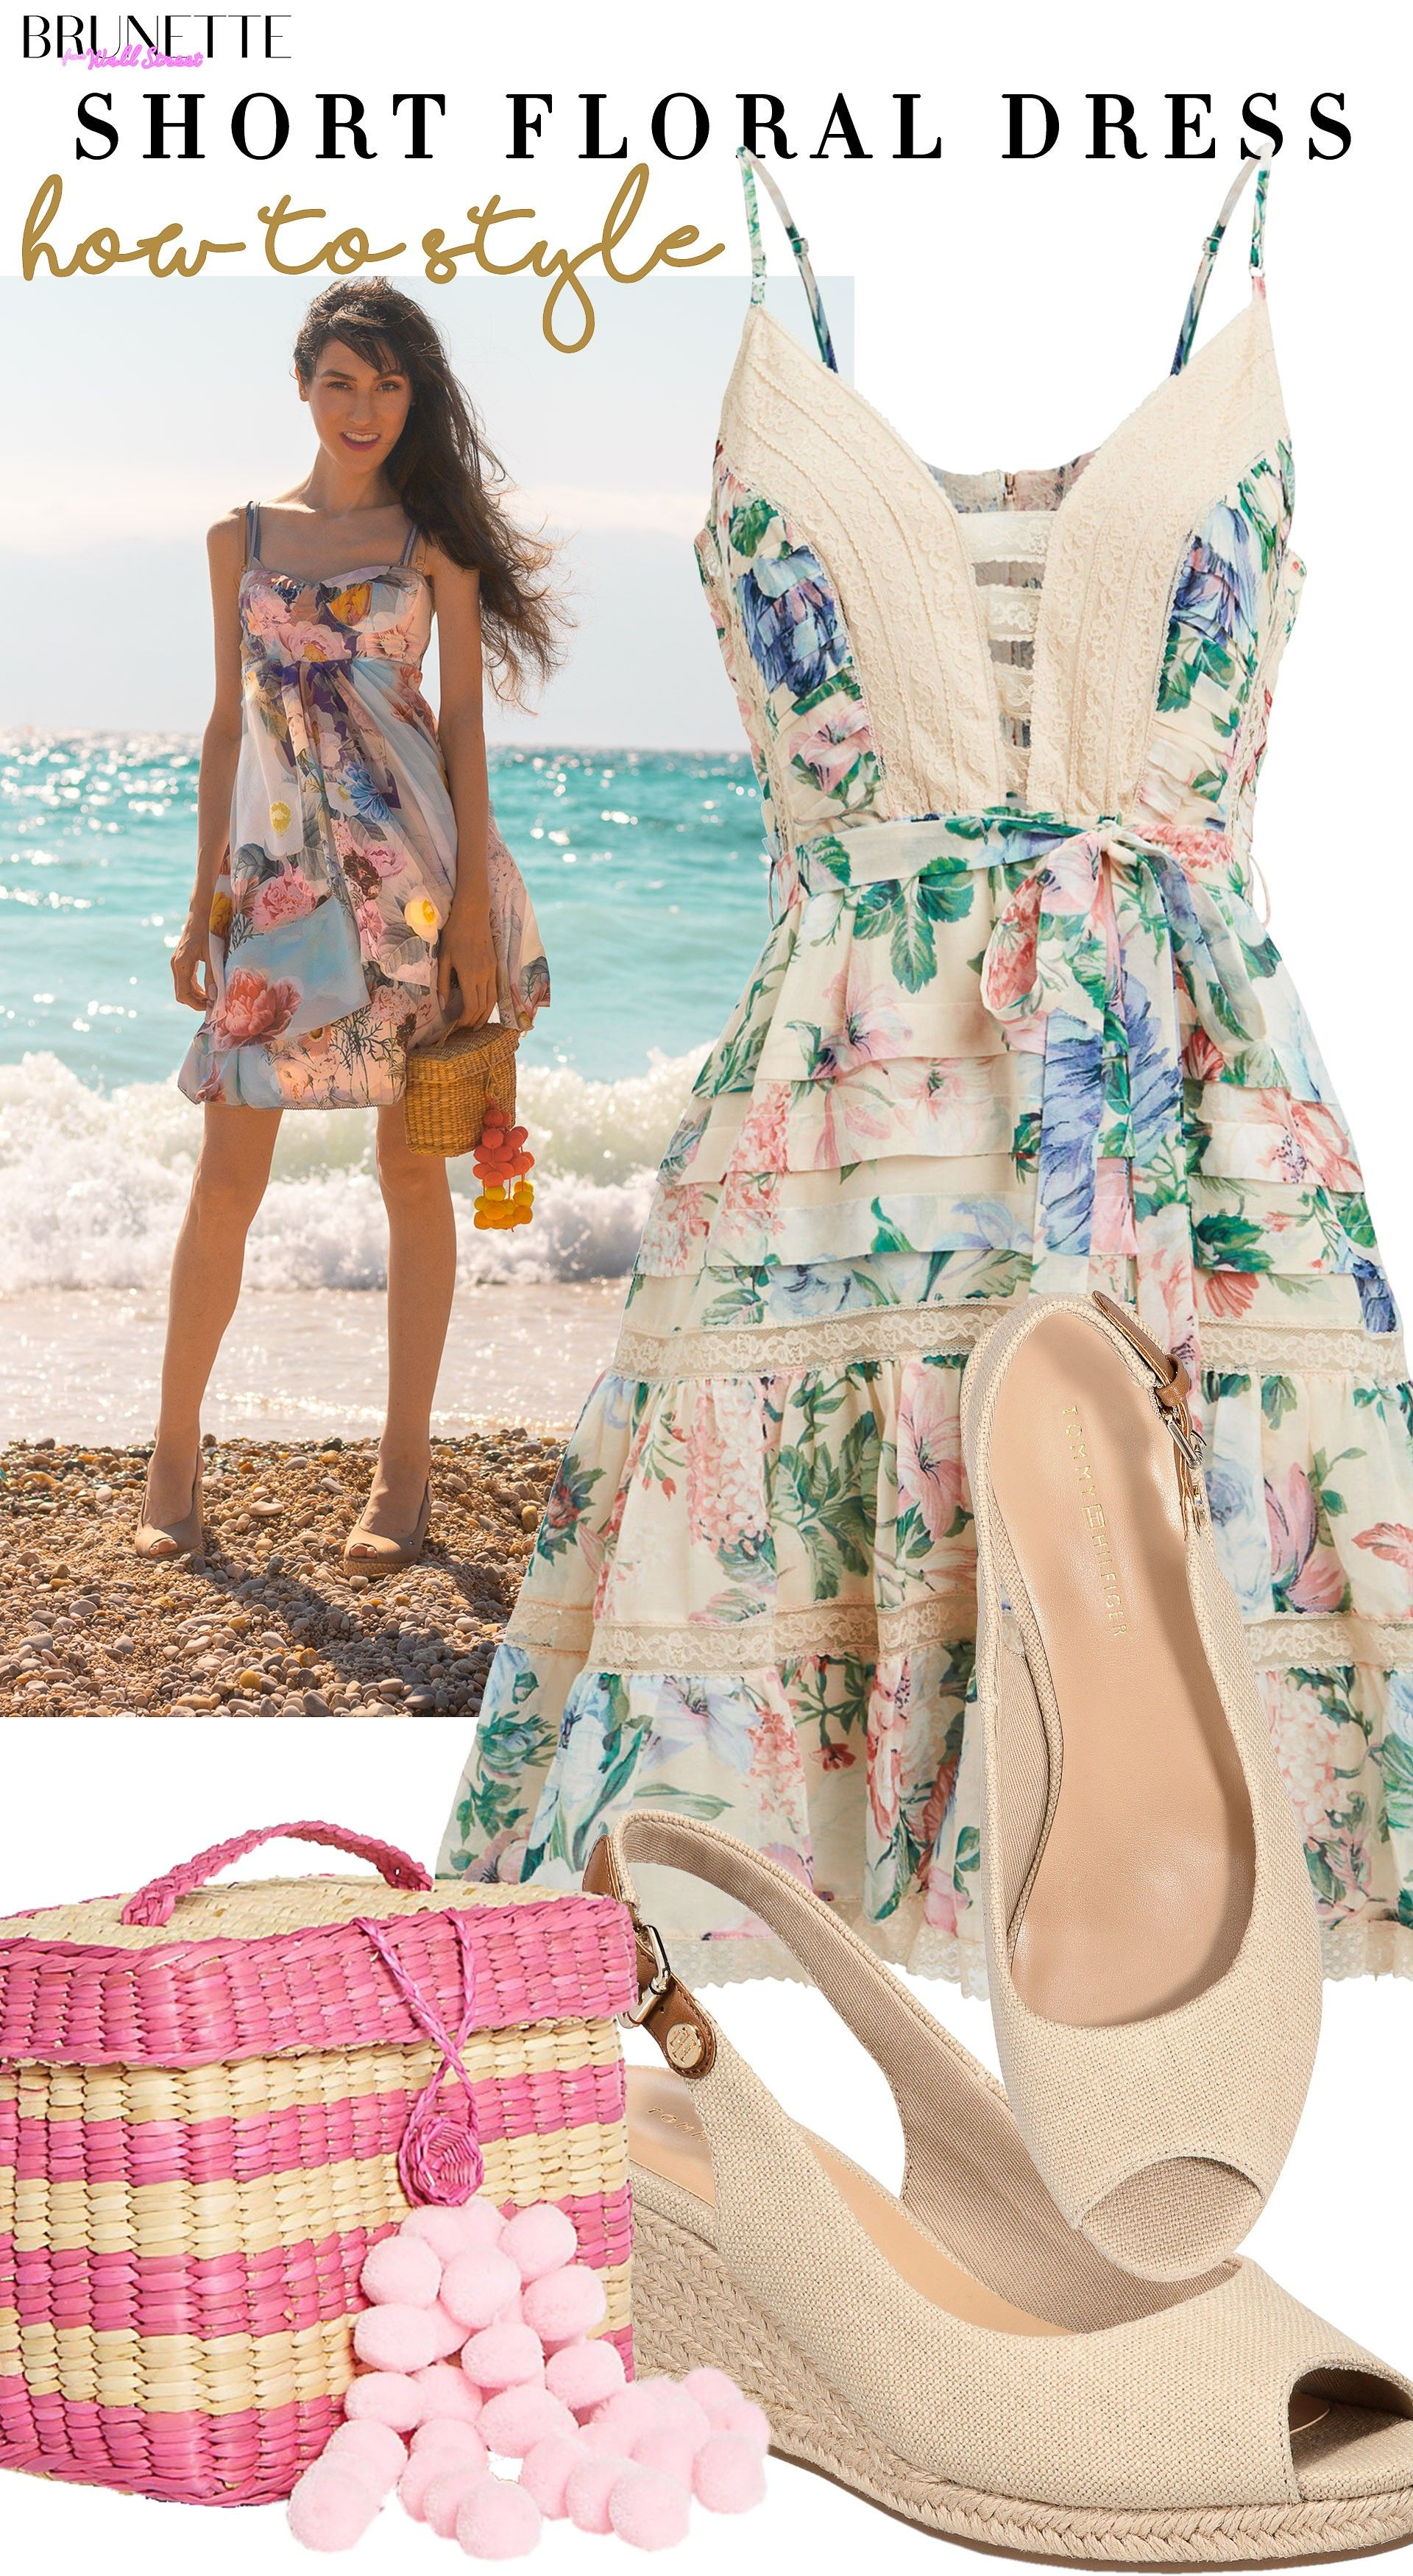 This Is One Of The Most Beautiful Wedding Guest Dresses Here Is How To Wear It For A Beach Wedding Beach Wedding Guest Dress Wedding Guest Outfit Guest Outfit [ 3500 x 1920 Pixel ]